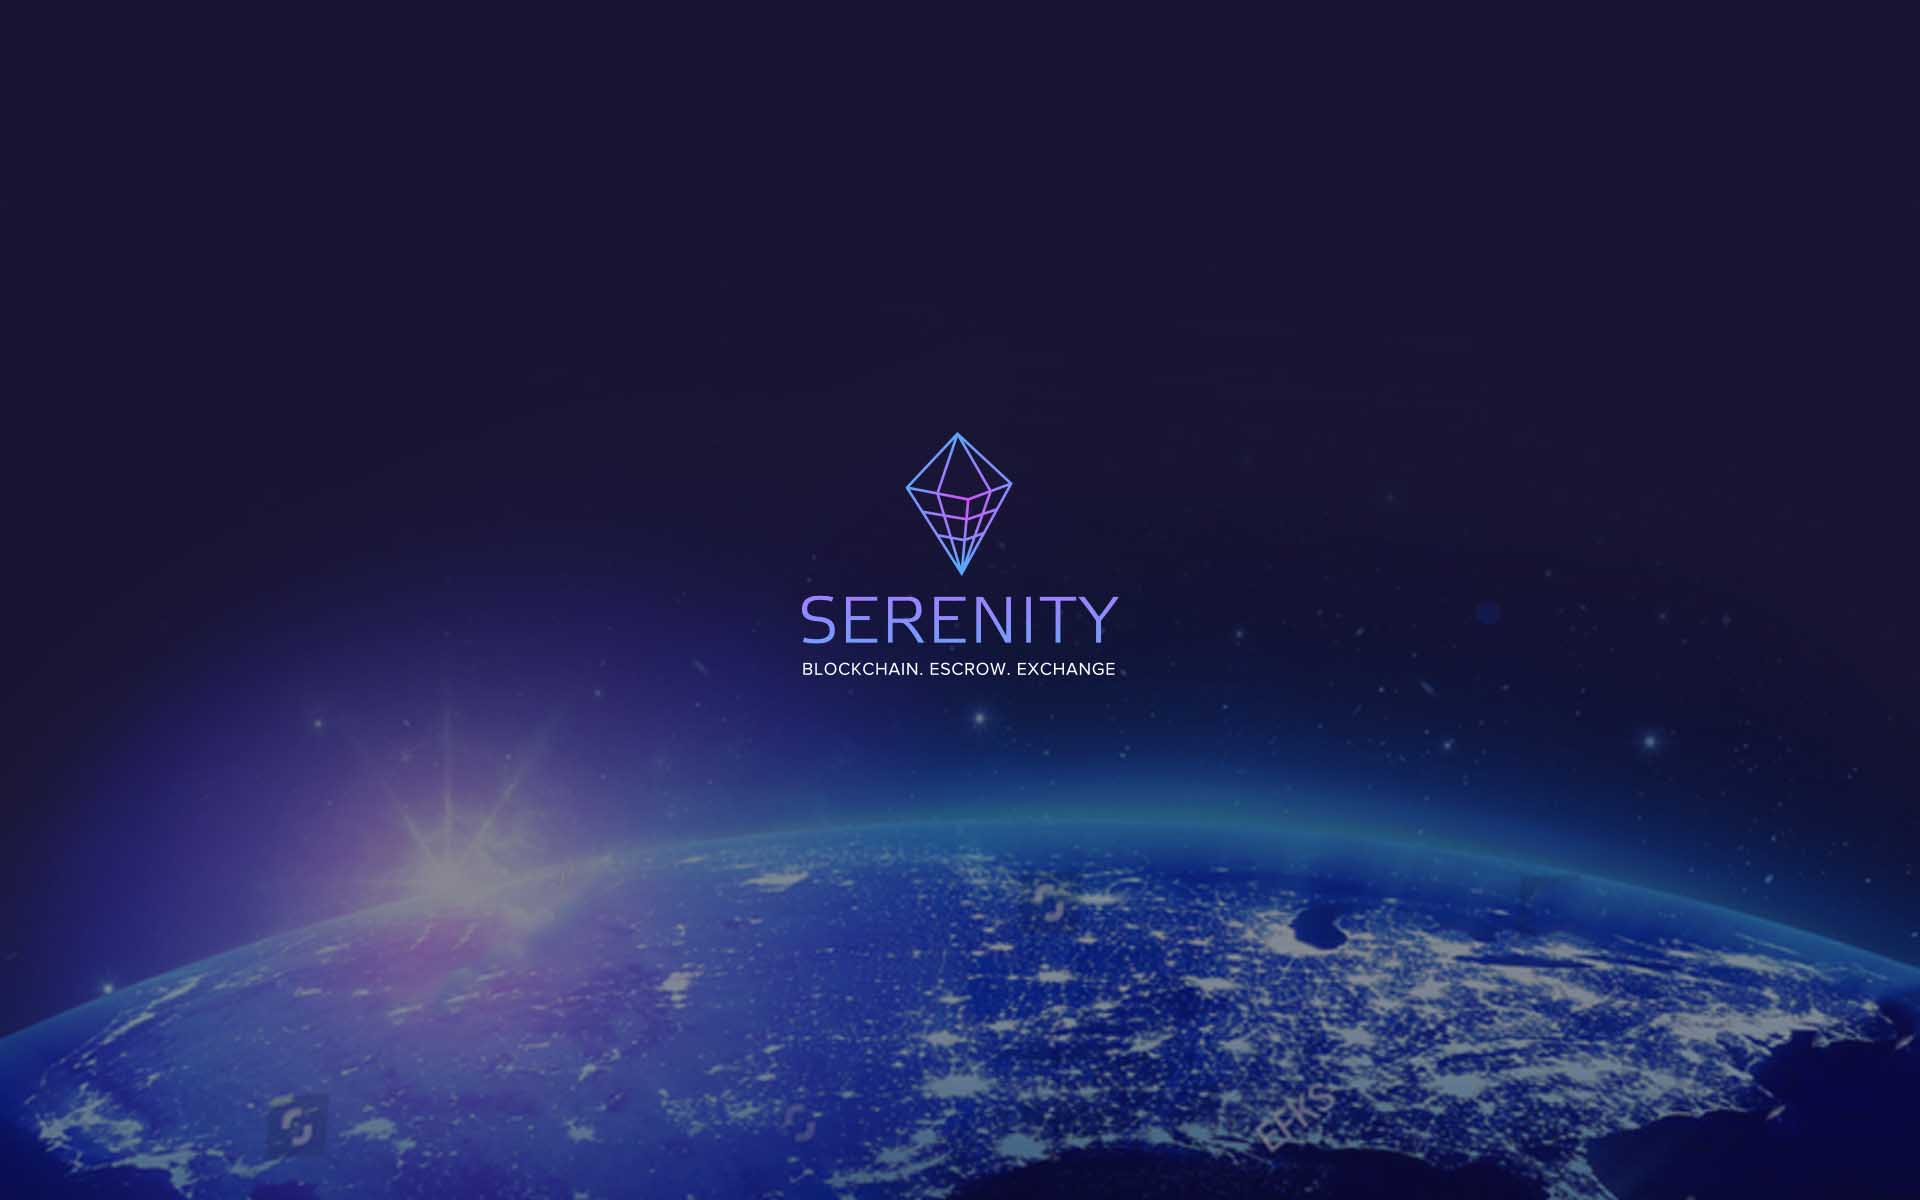 Serenity Project Raises Its First $1,000,000 Two Days After the ICO Launch